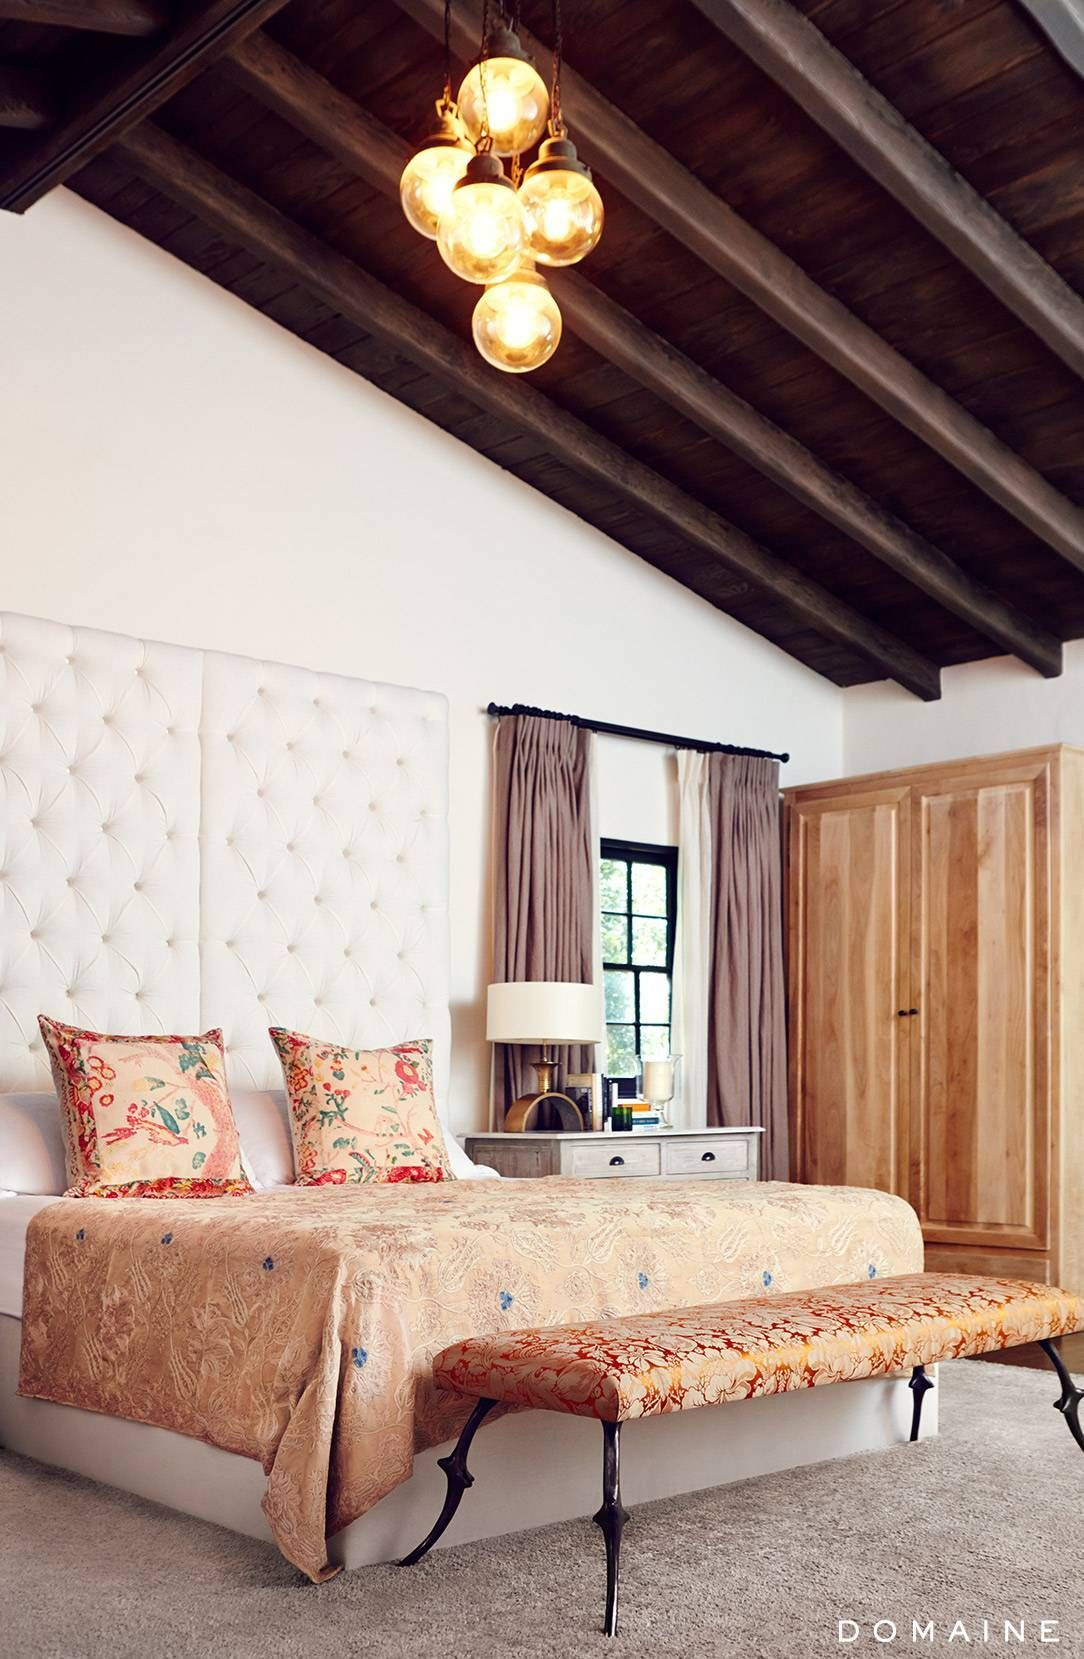 Everything You Need To Know About Spanish Decor in 2020